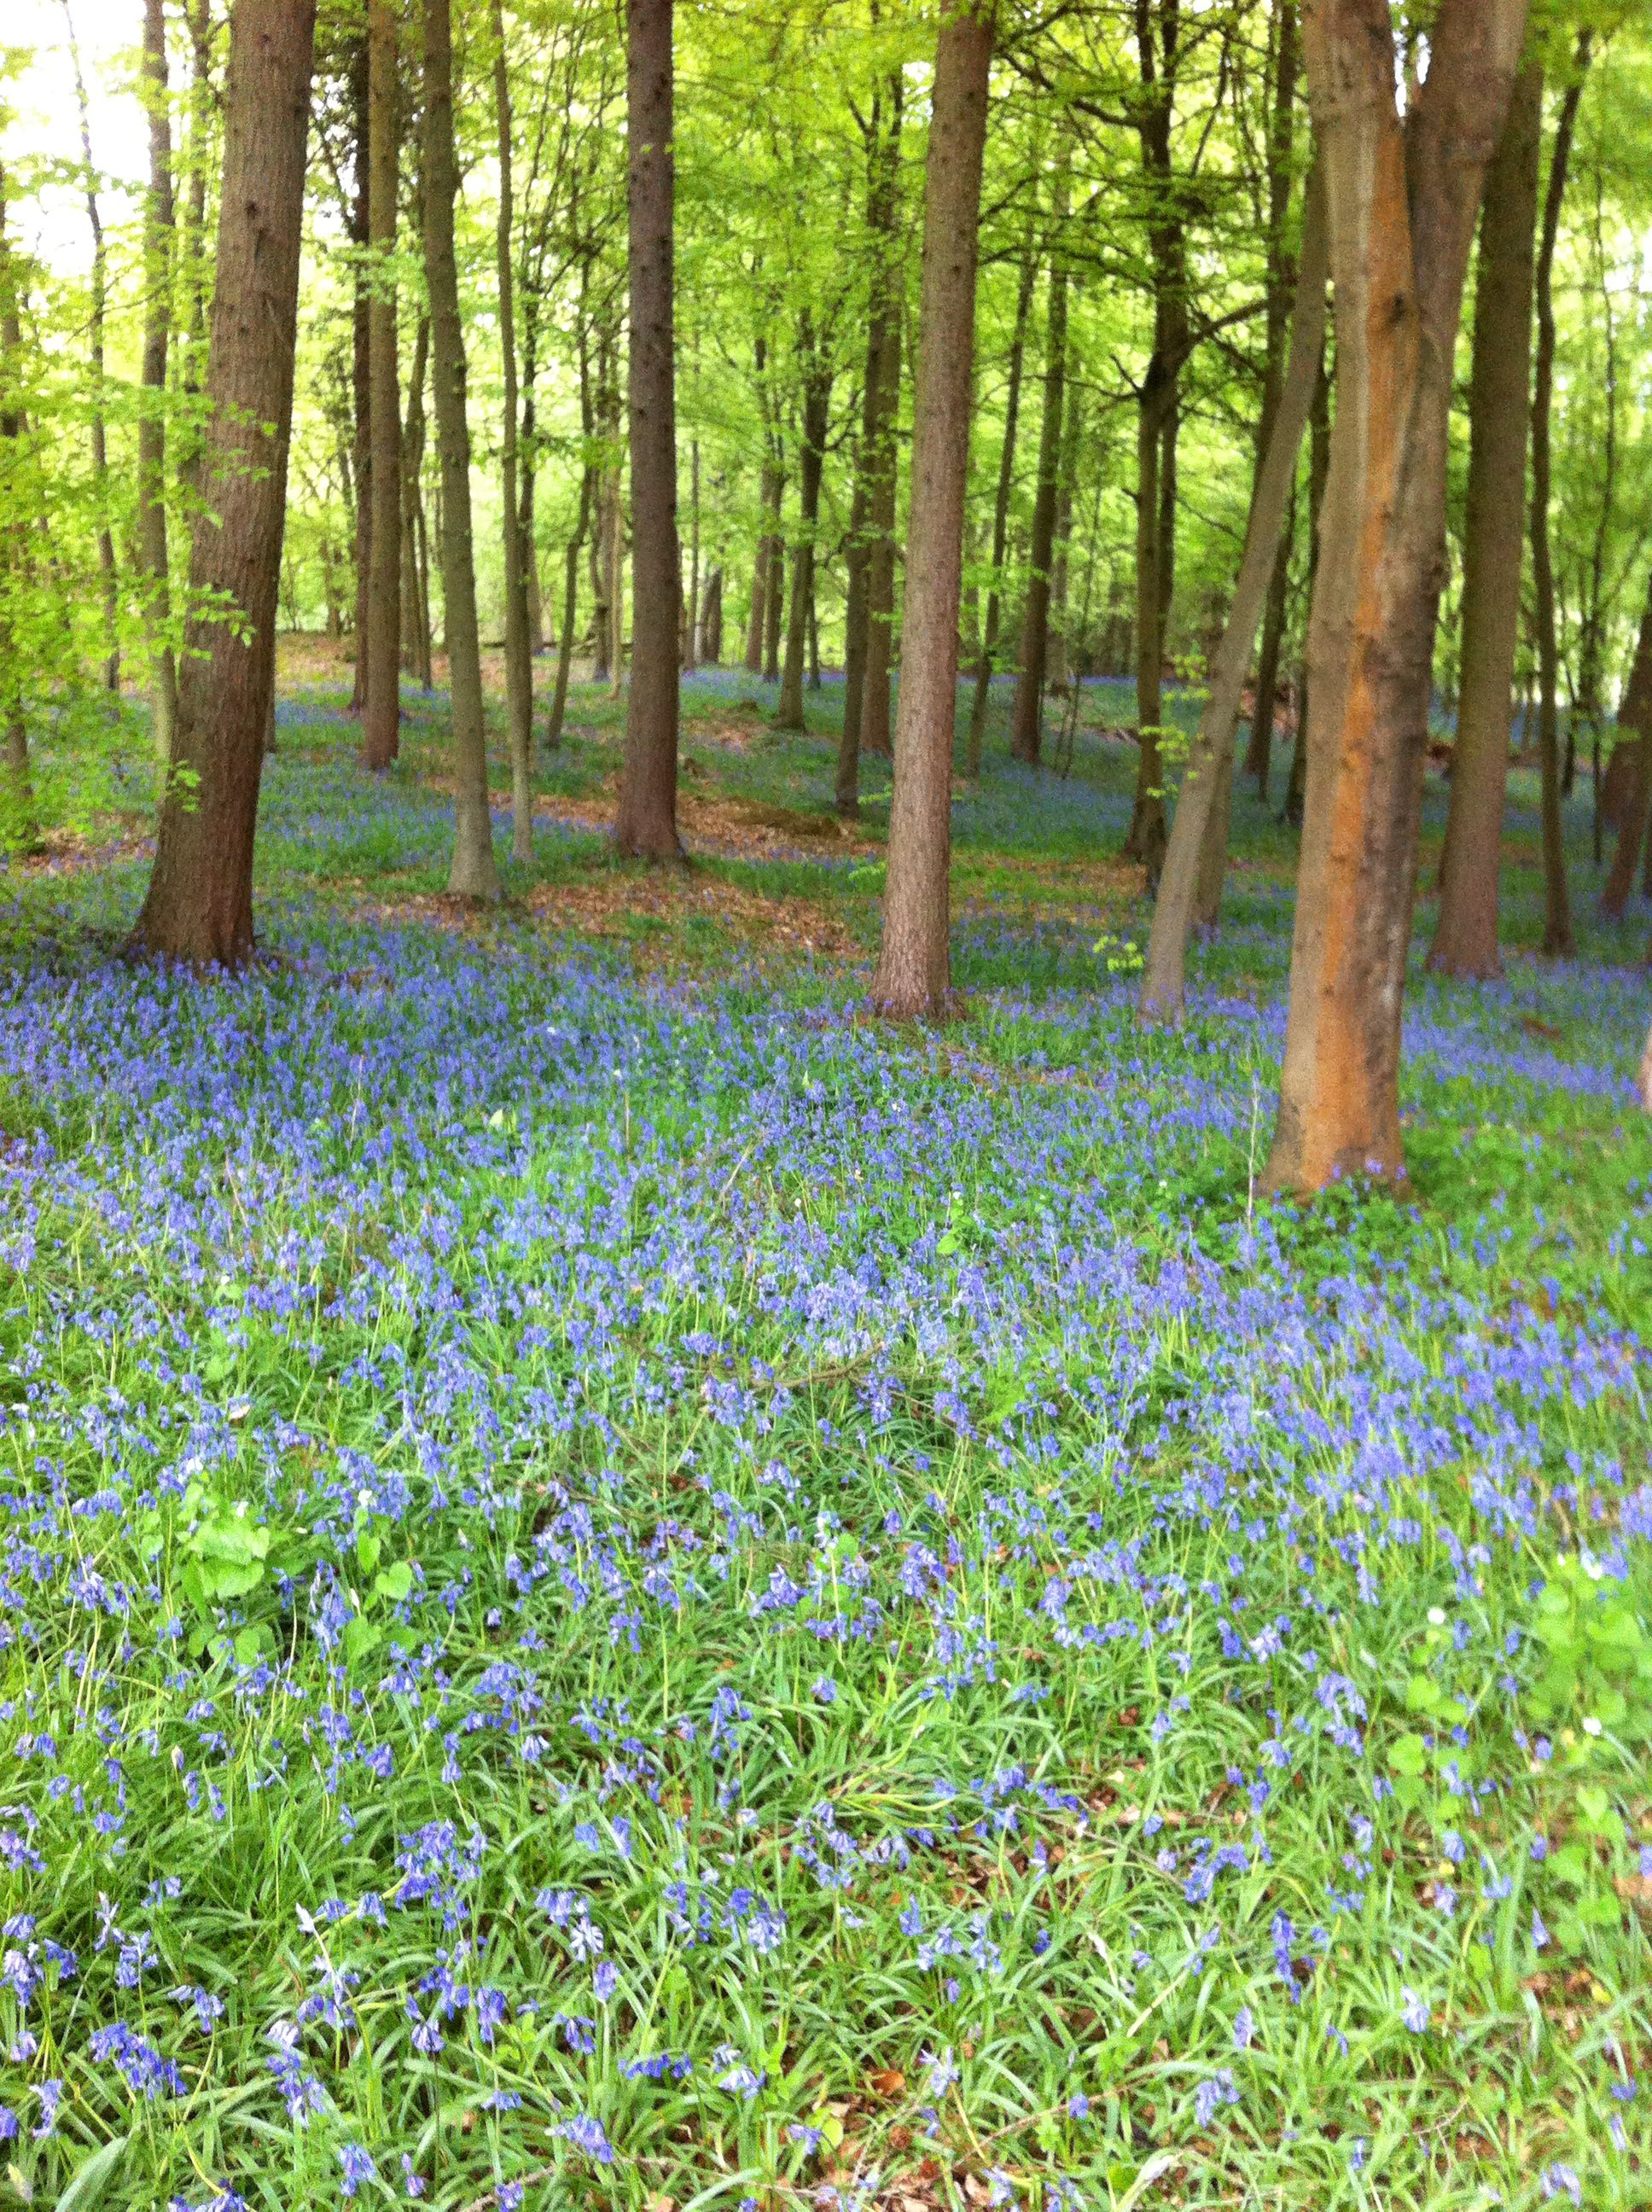 Carpet of bluebells at Polesden Lacey, Surrey